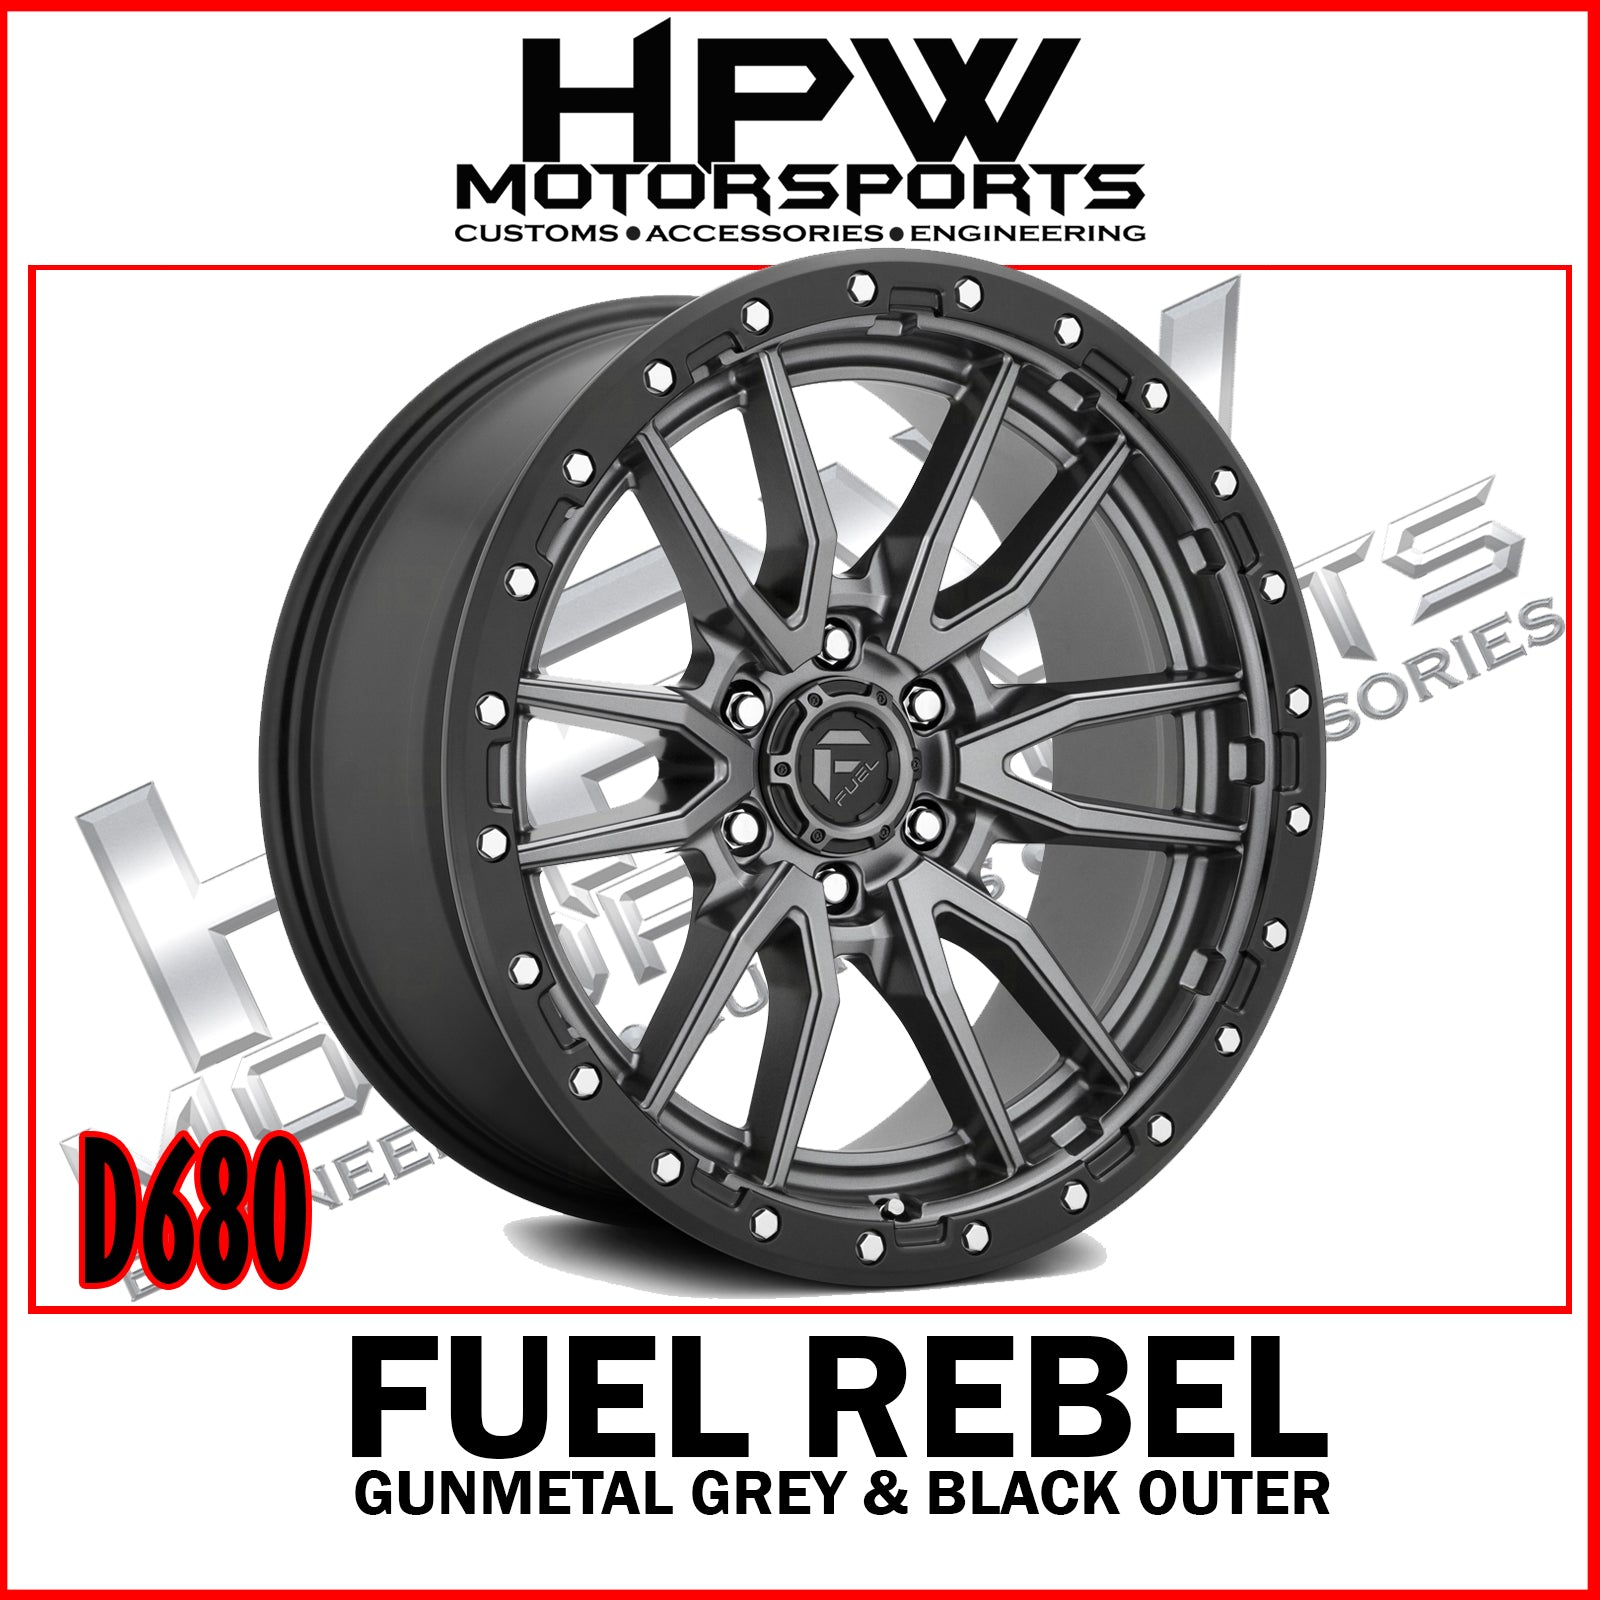 D680 REBEL - Gunmetal center & black outer - Set of 4